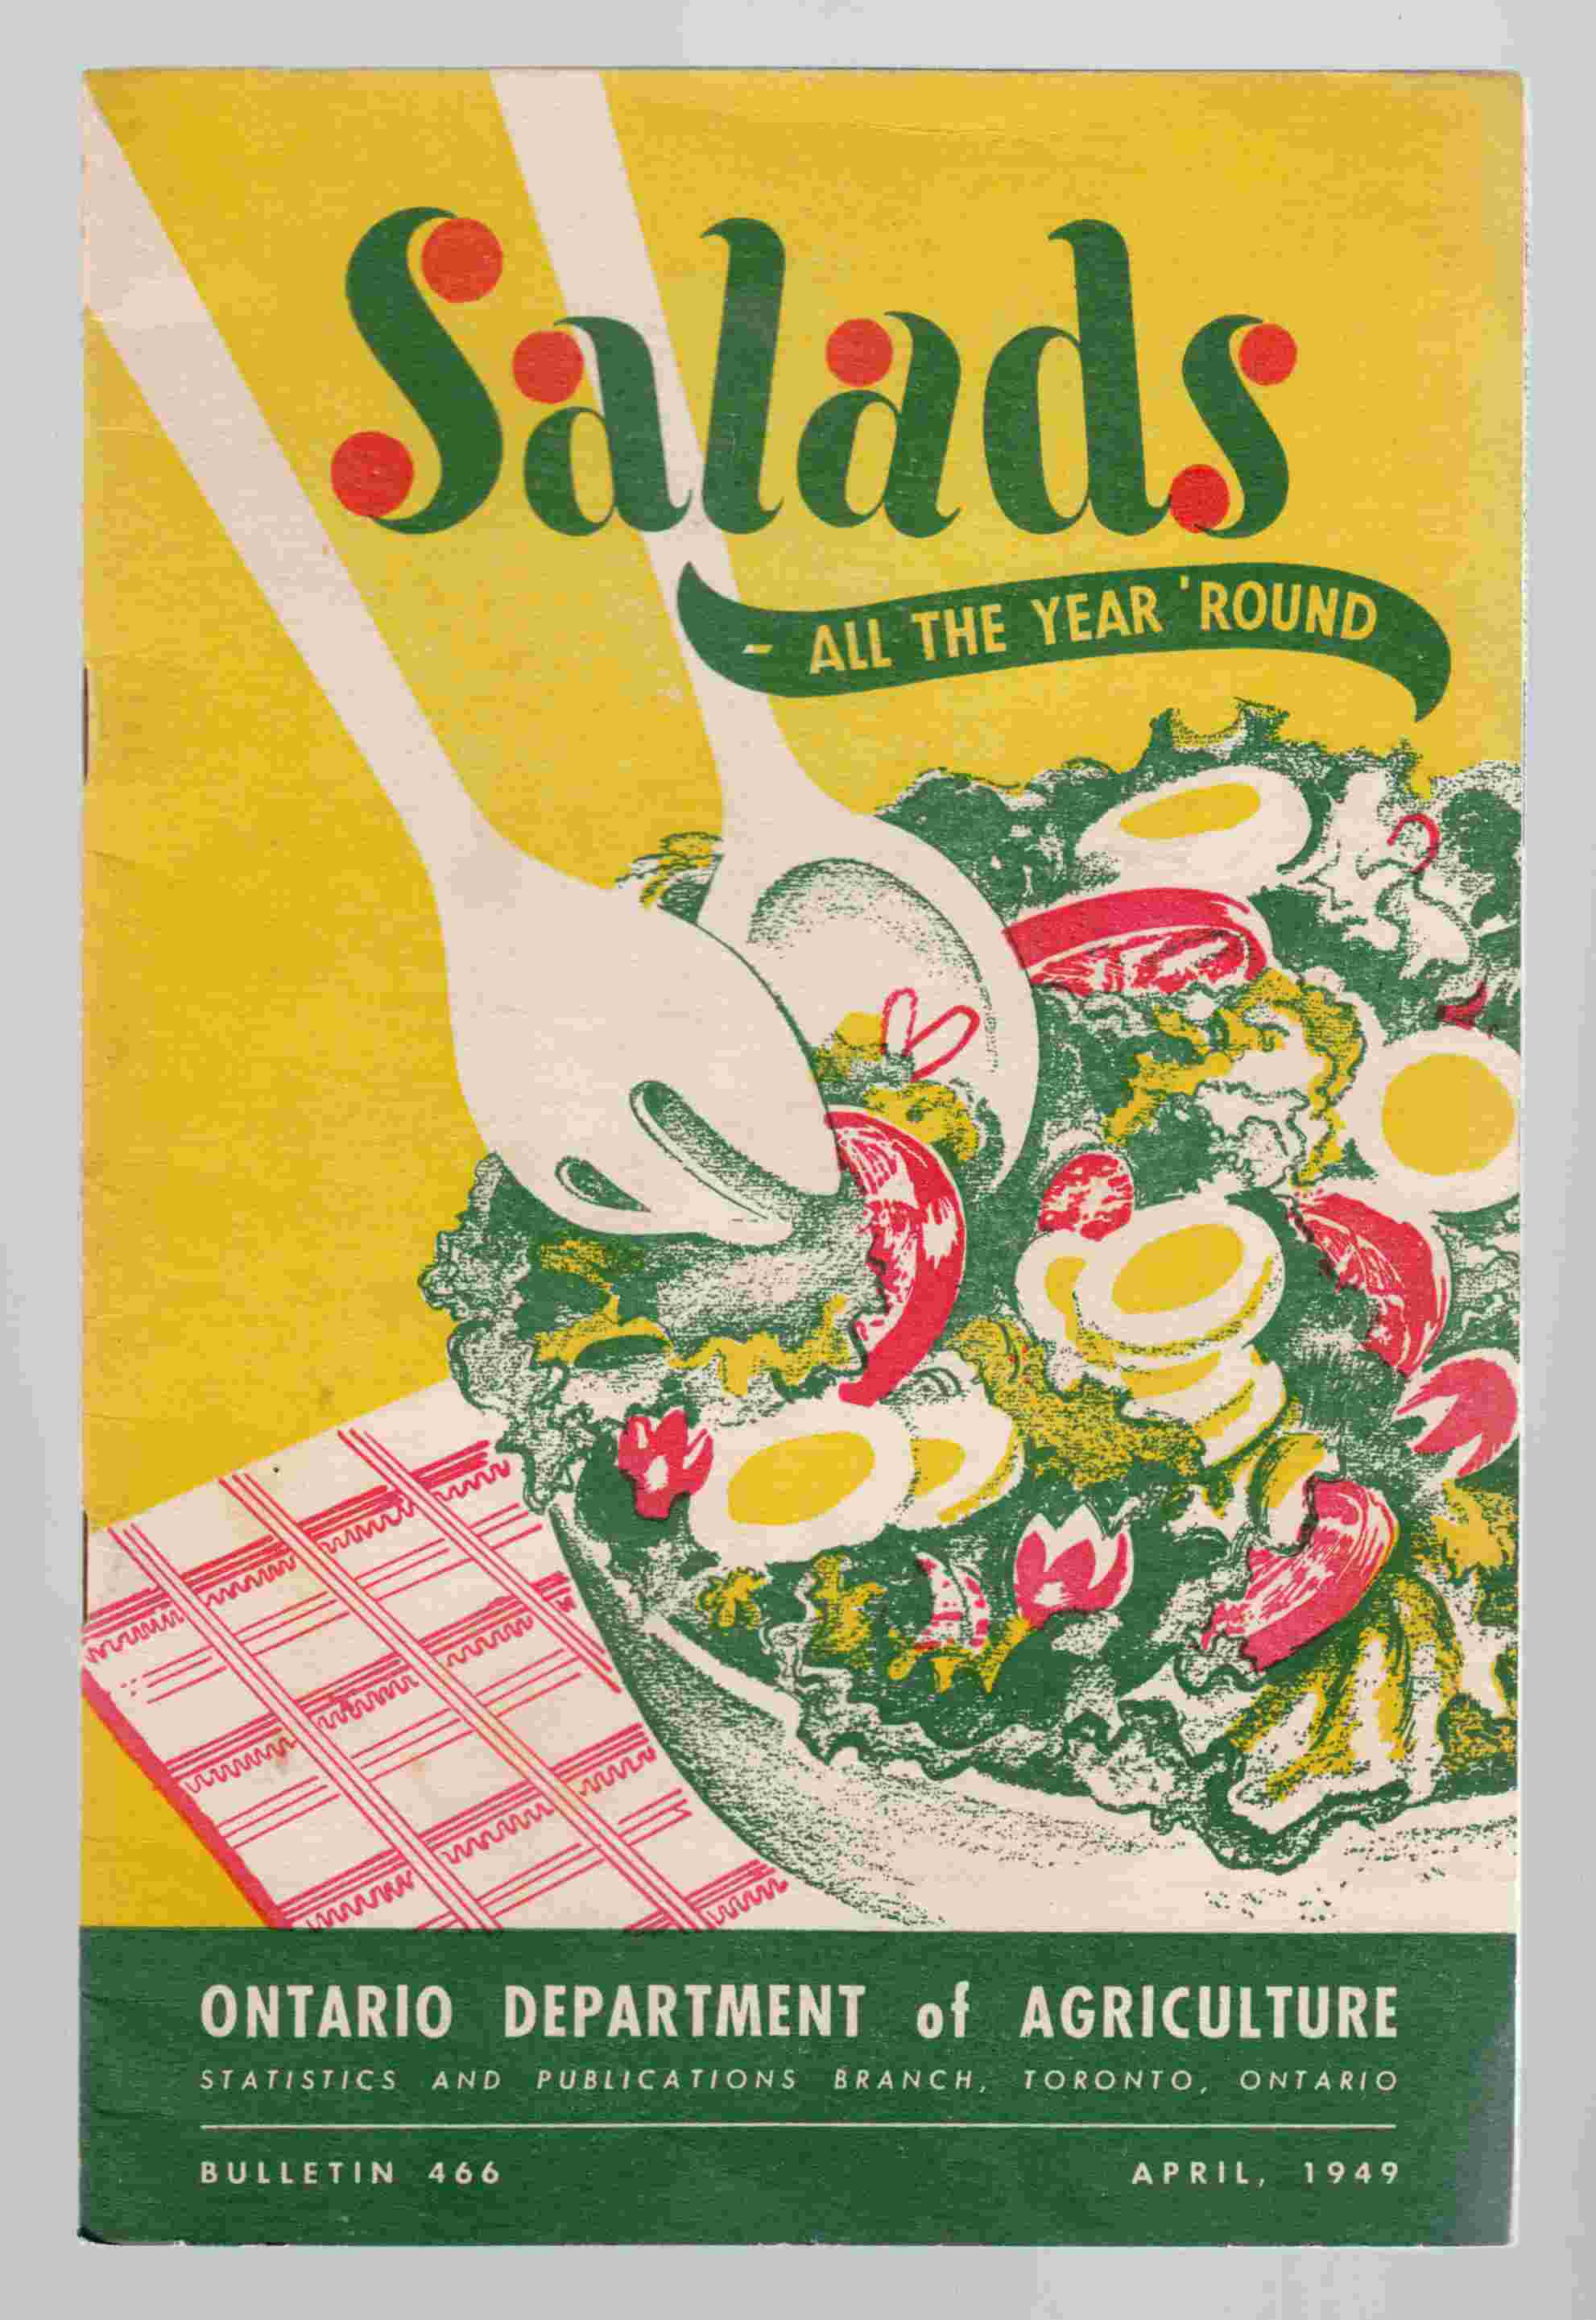 Image for Salads - all the Year 'round Bulletin 466